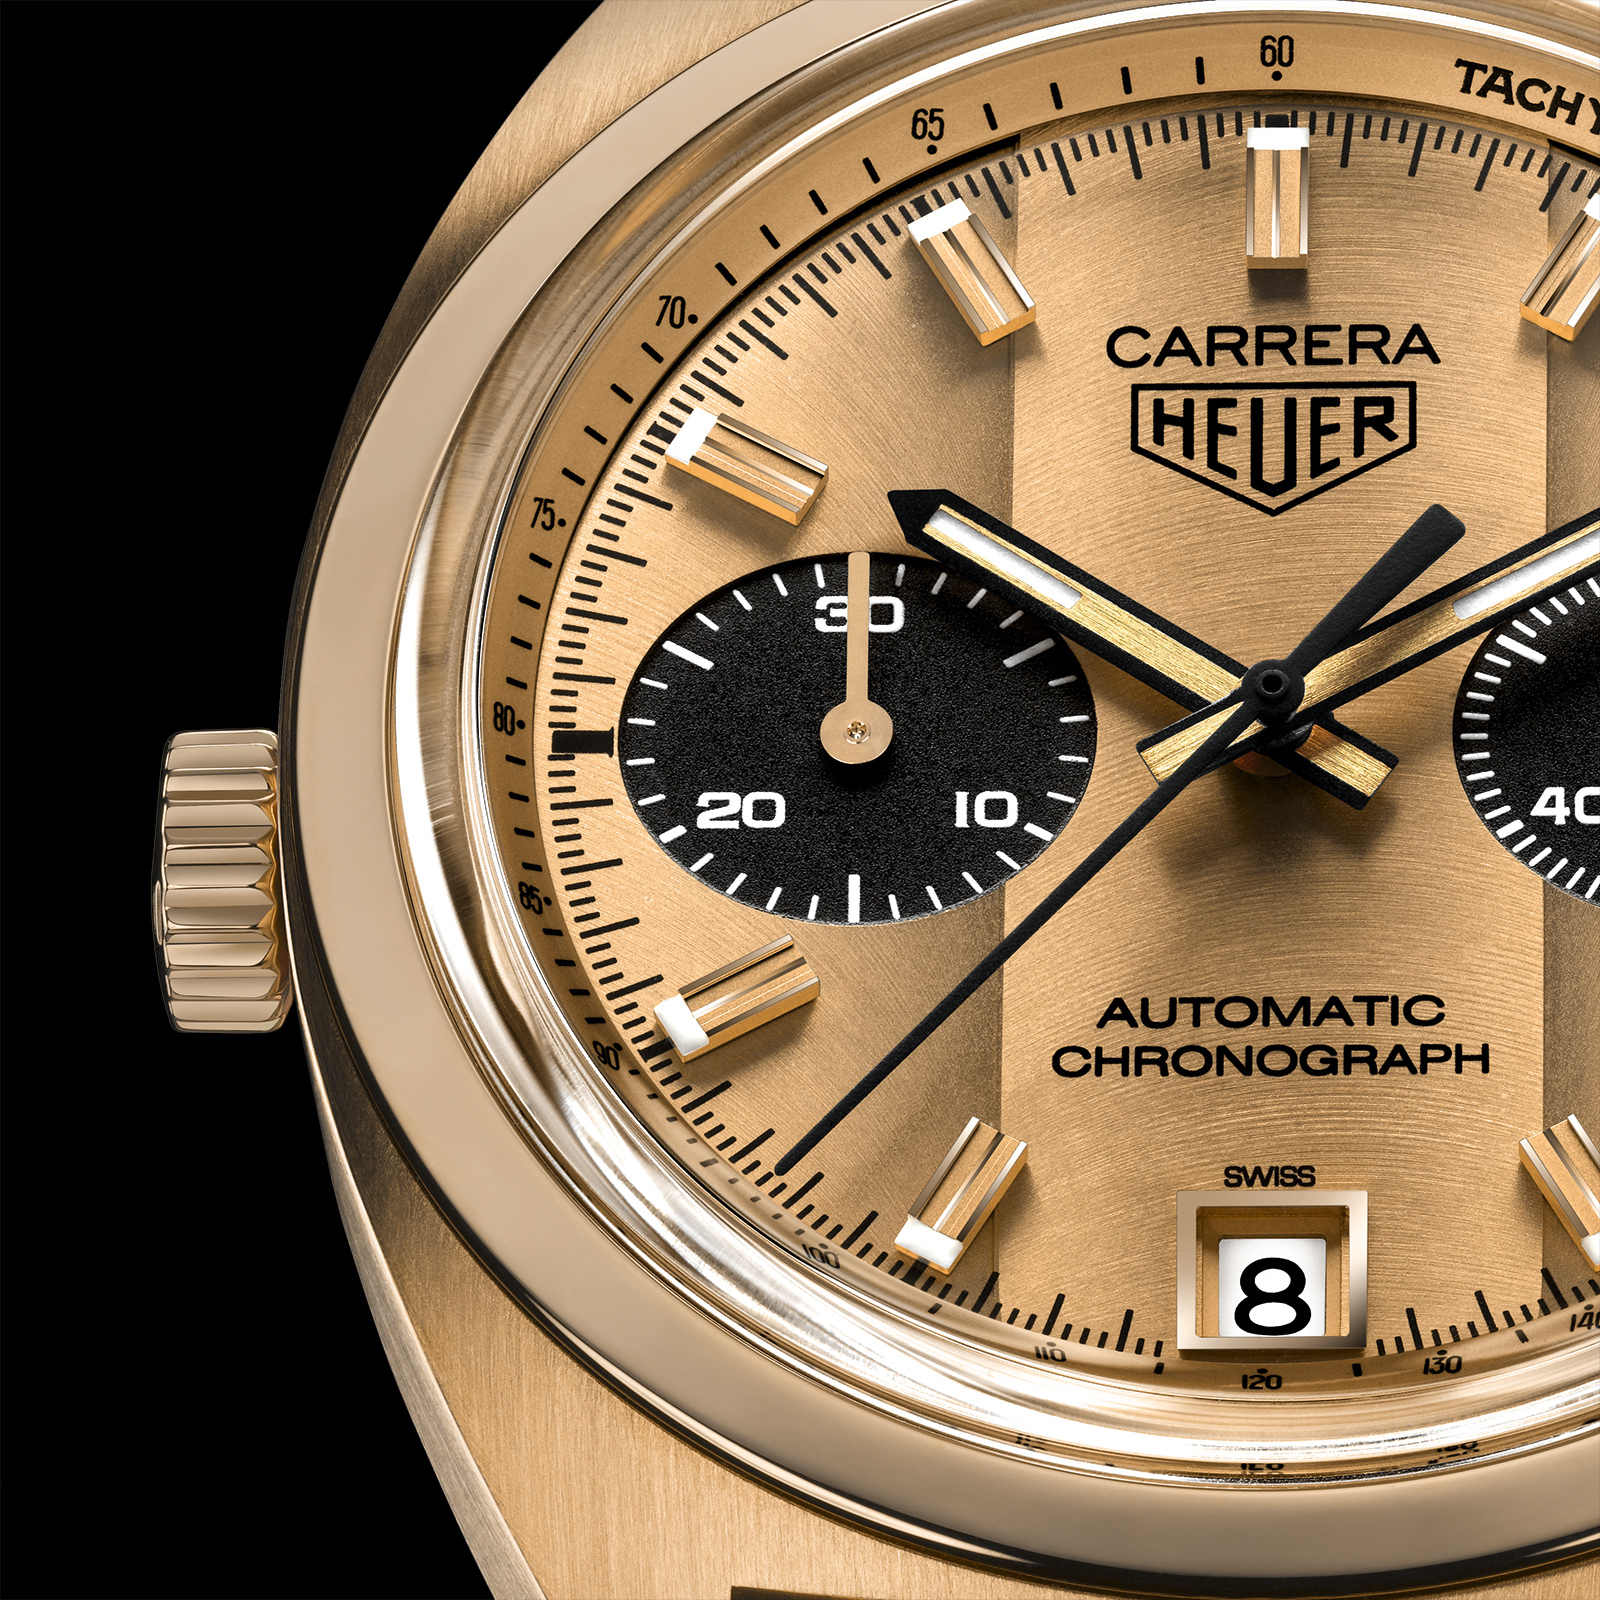 TAG Heuer Carrera Ronnie Peterson remake 1